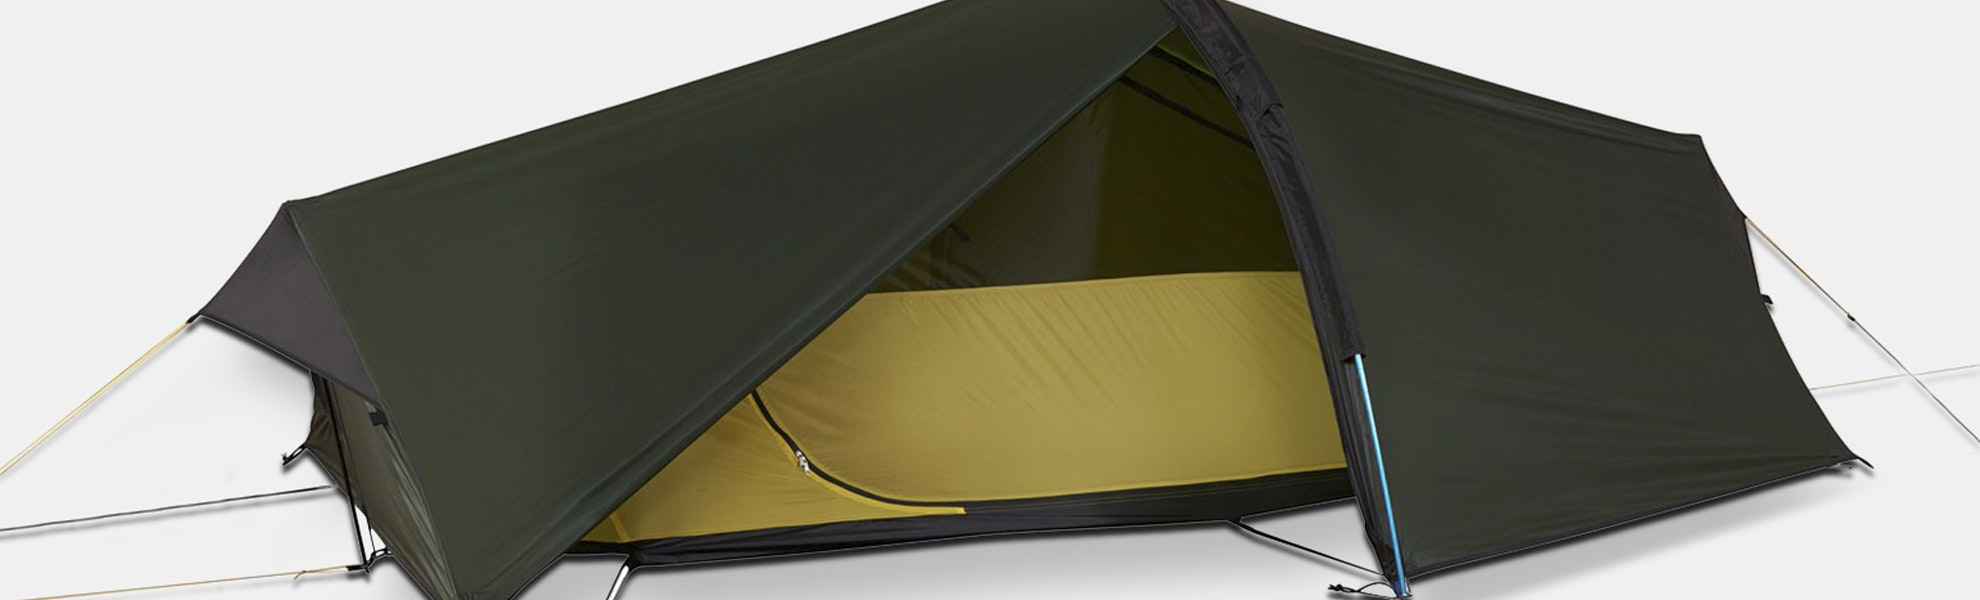 Terra Nova Laser Competition 2 or Photon 1 Tents & Terra Nova Laser Competition 2 or Photon 1 Tents | Price u0026 Reviews ...